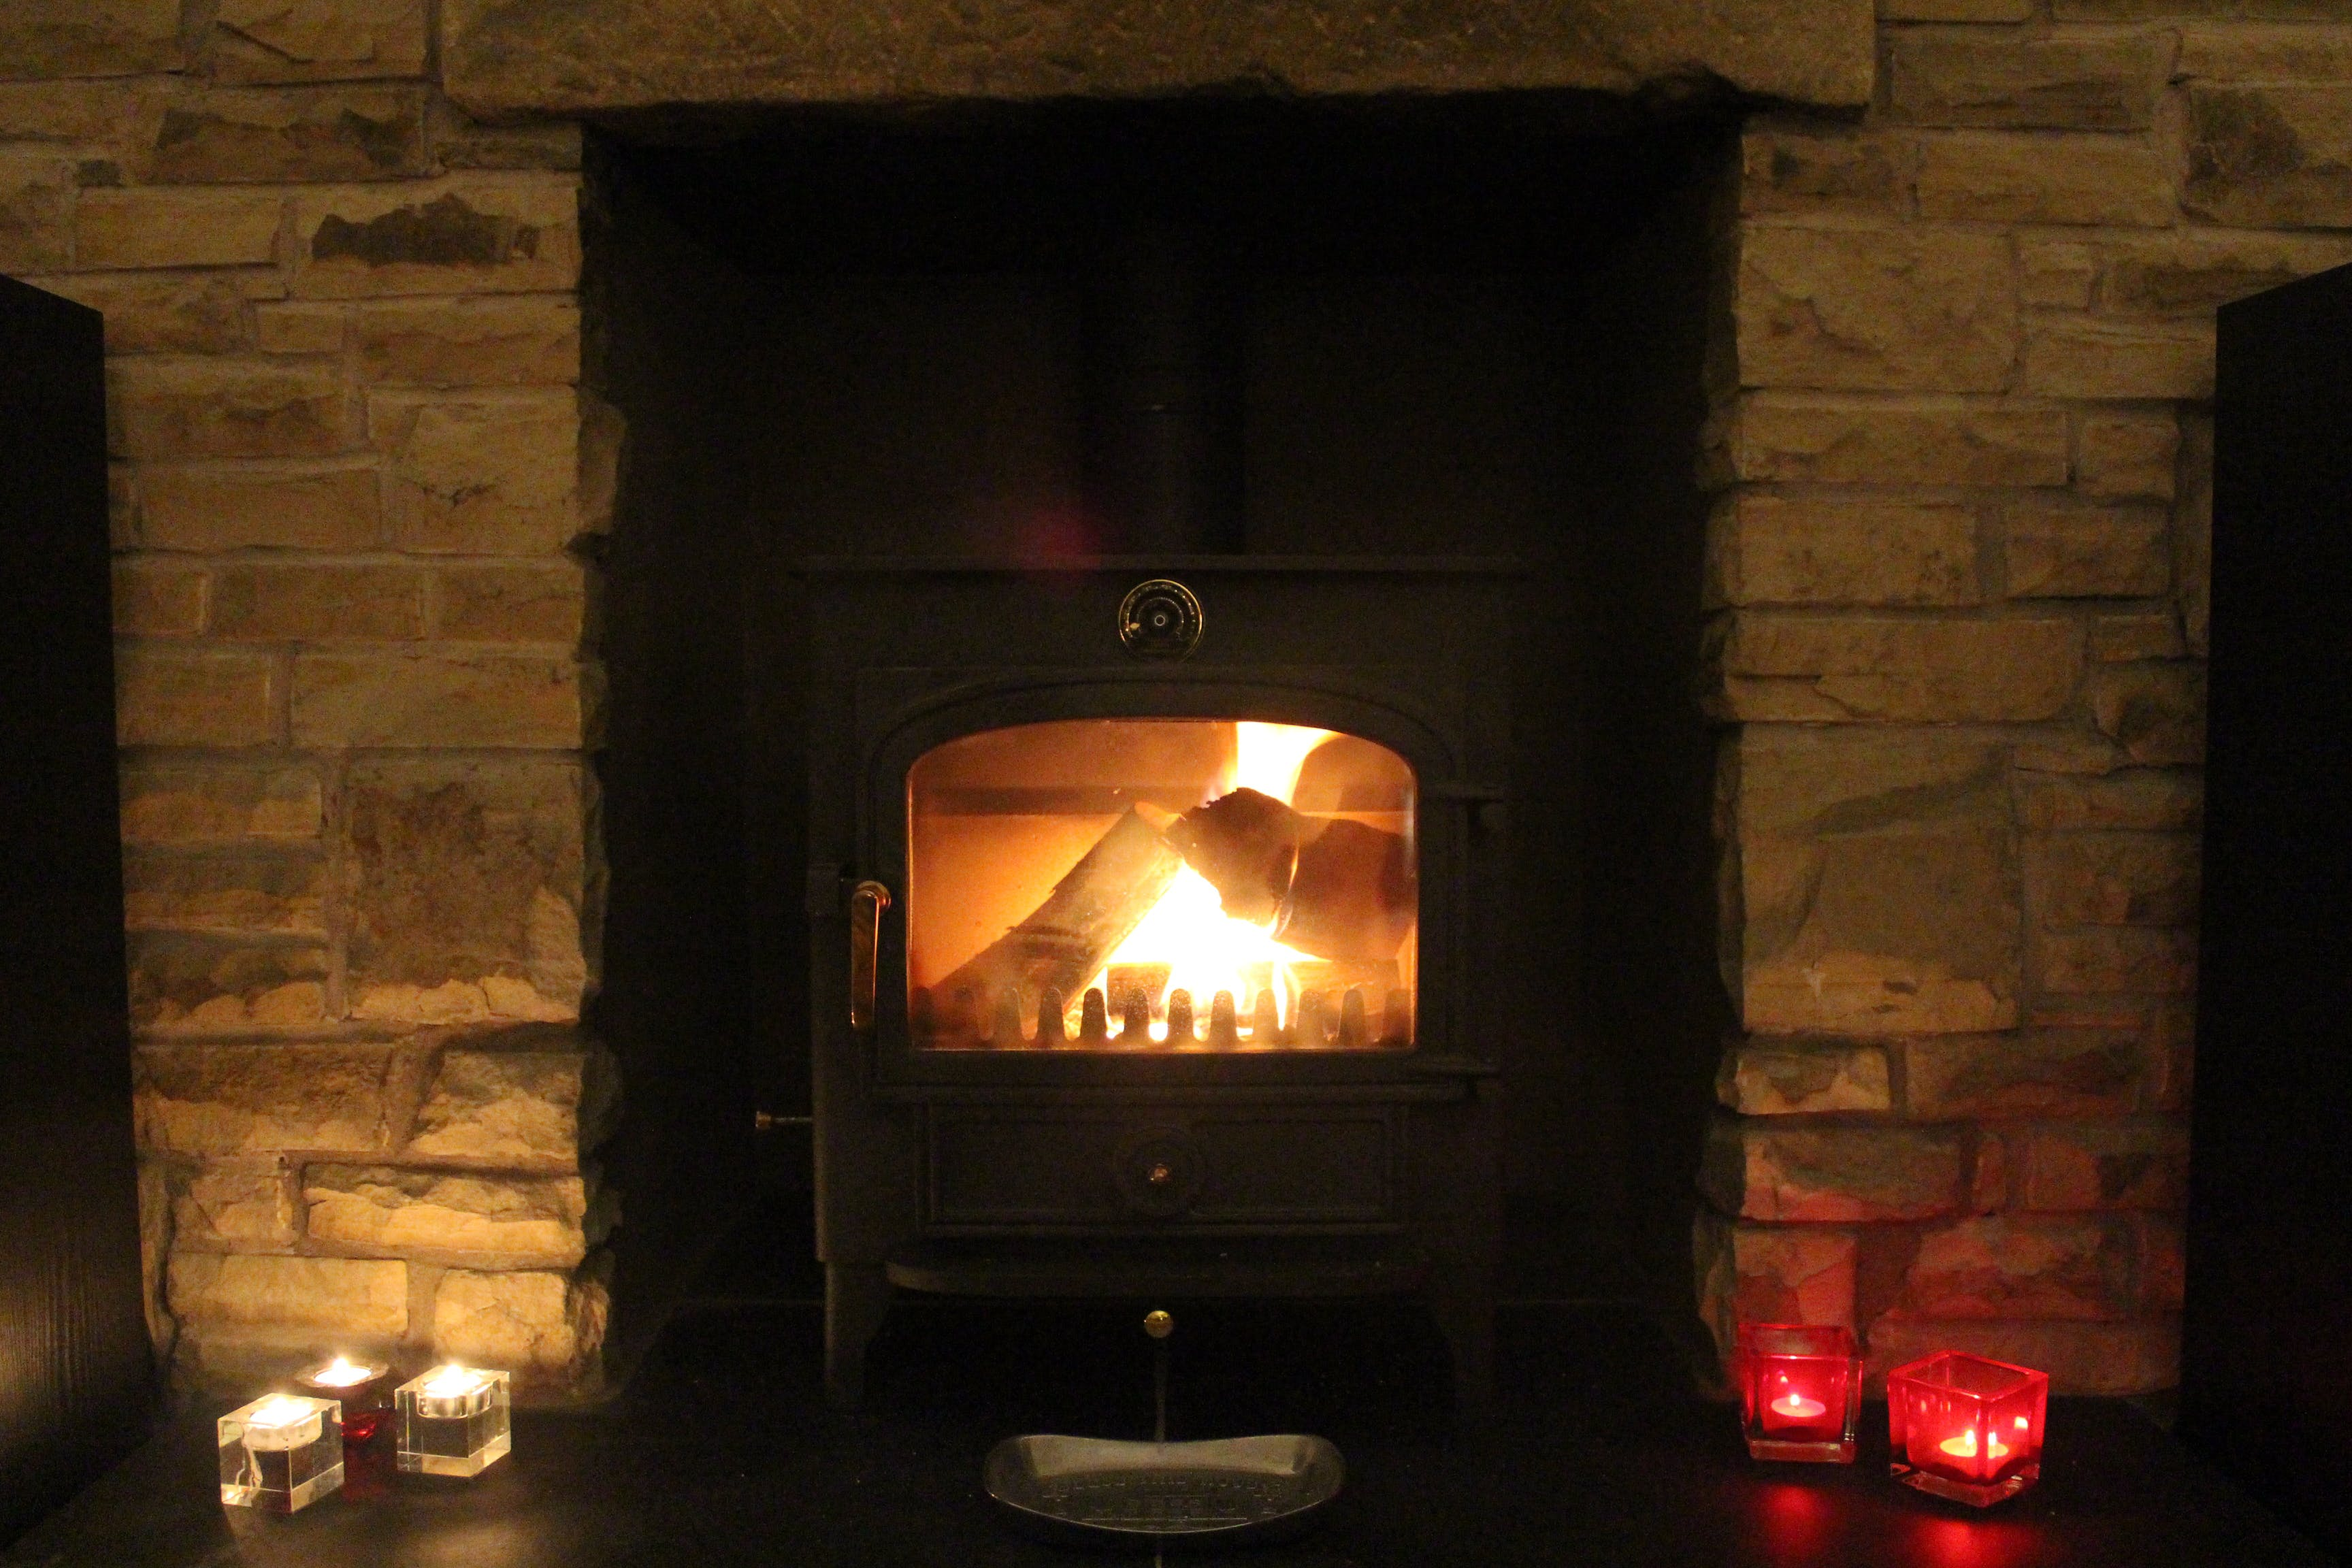 Wood burning stove in The Old School House B&B, Haltwhistle